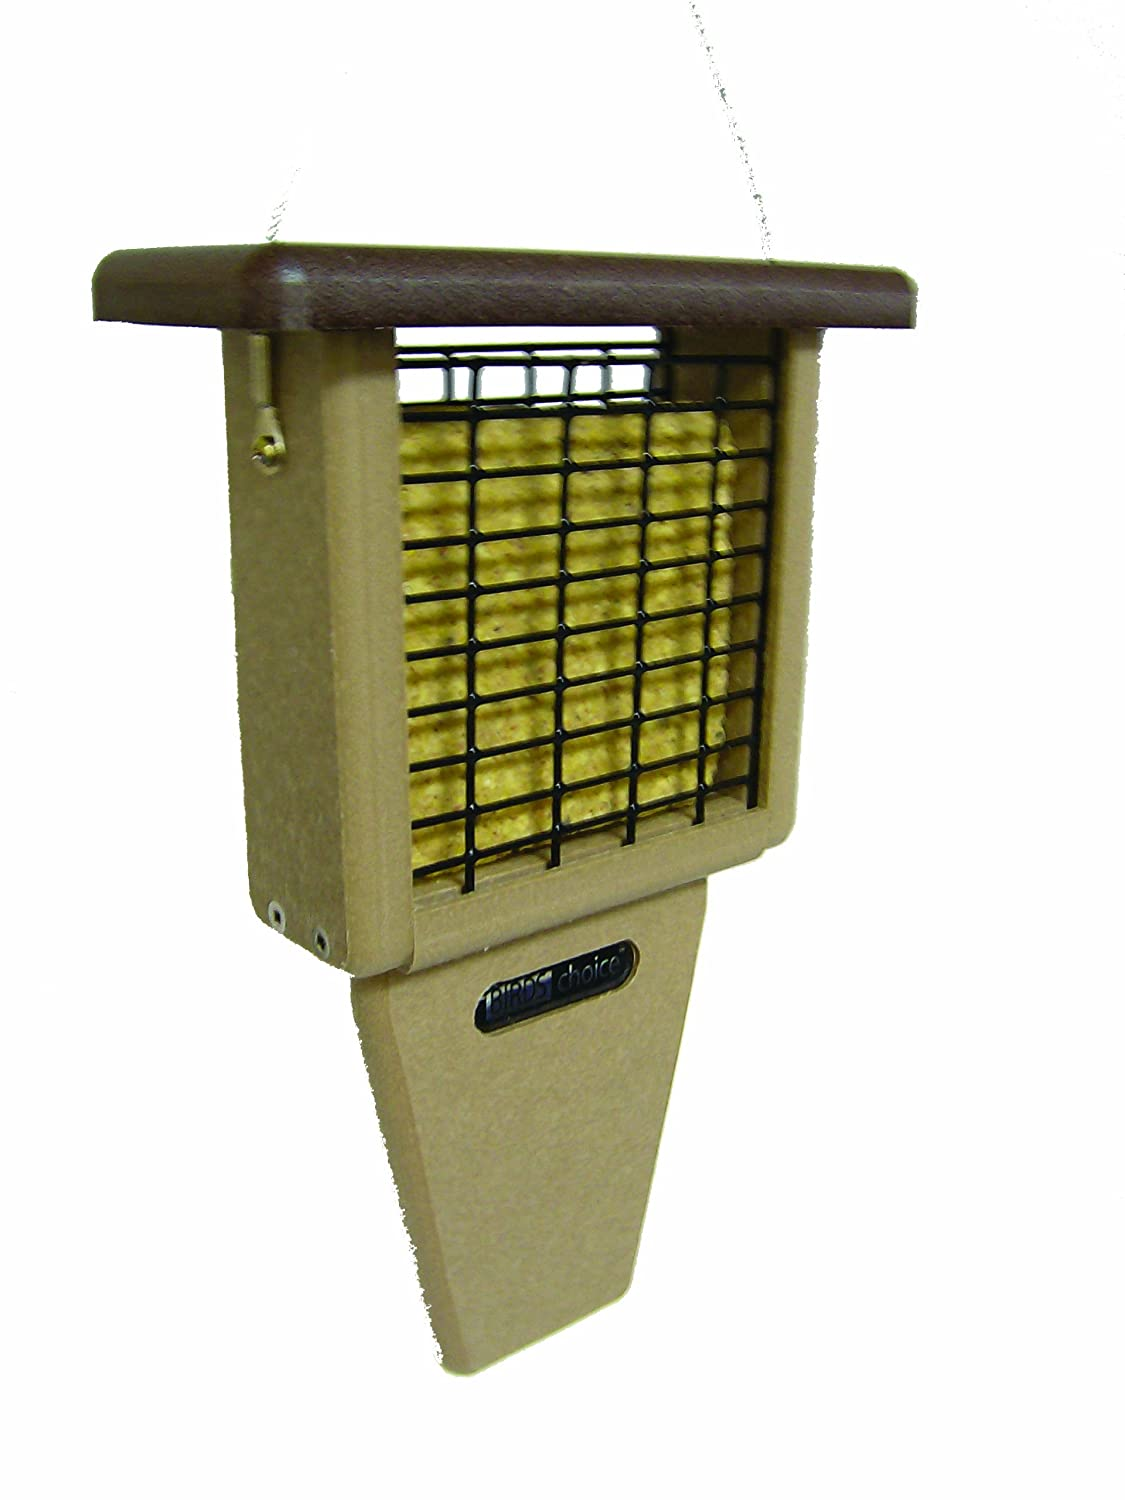 B0046HKX6Y Birds Choice Single-Cake Tail-Prop Suet Feeder with Brown Top 81jErwh0gcL